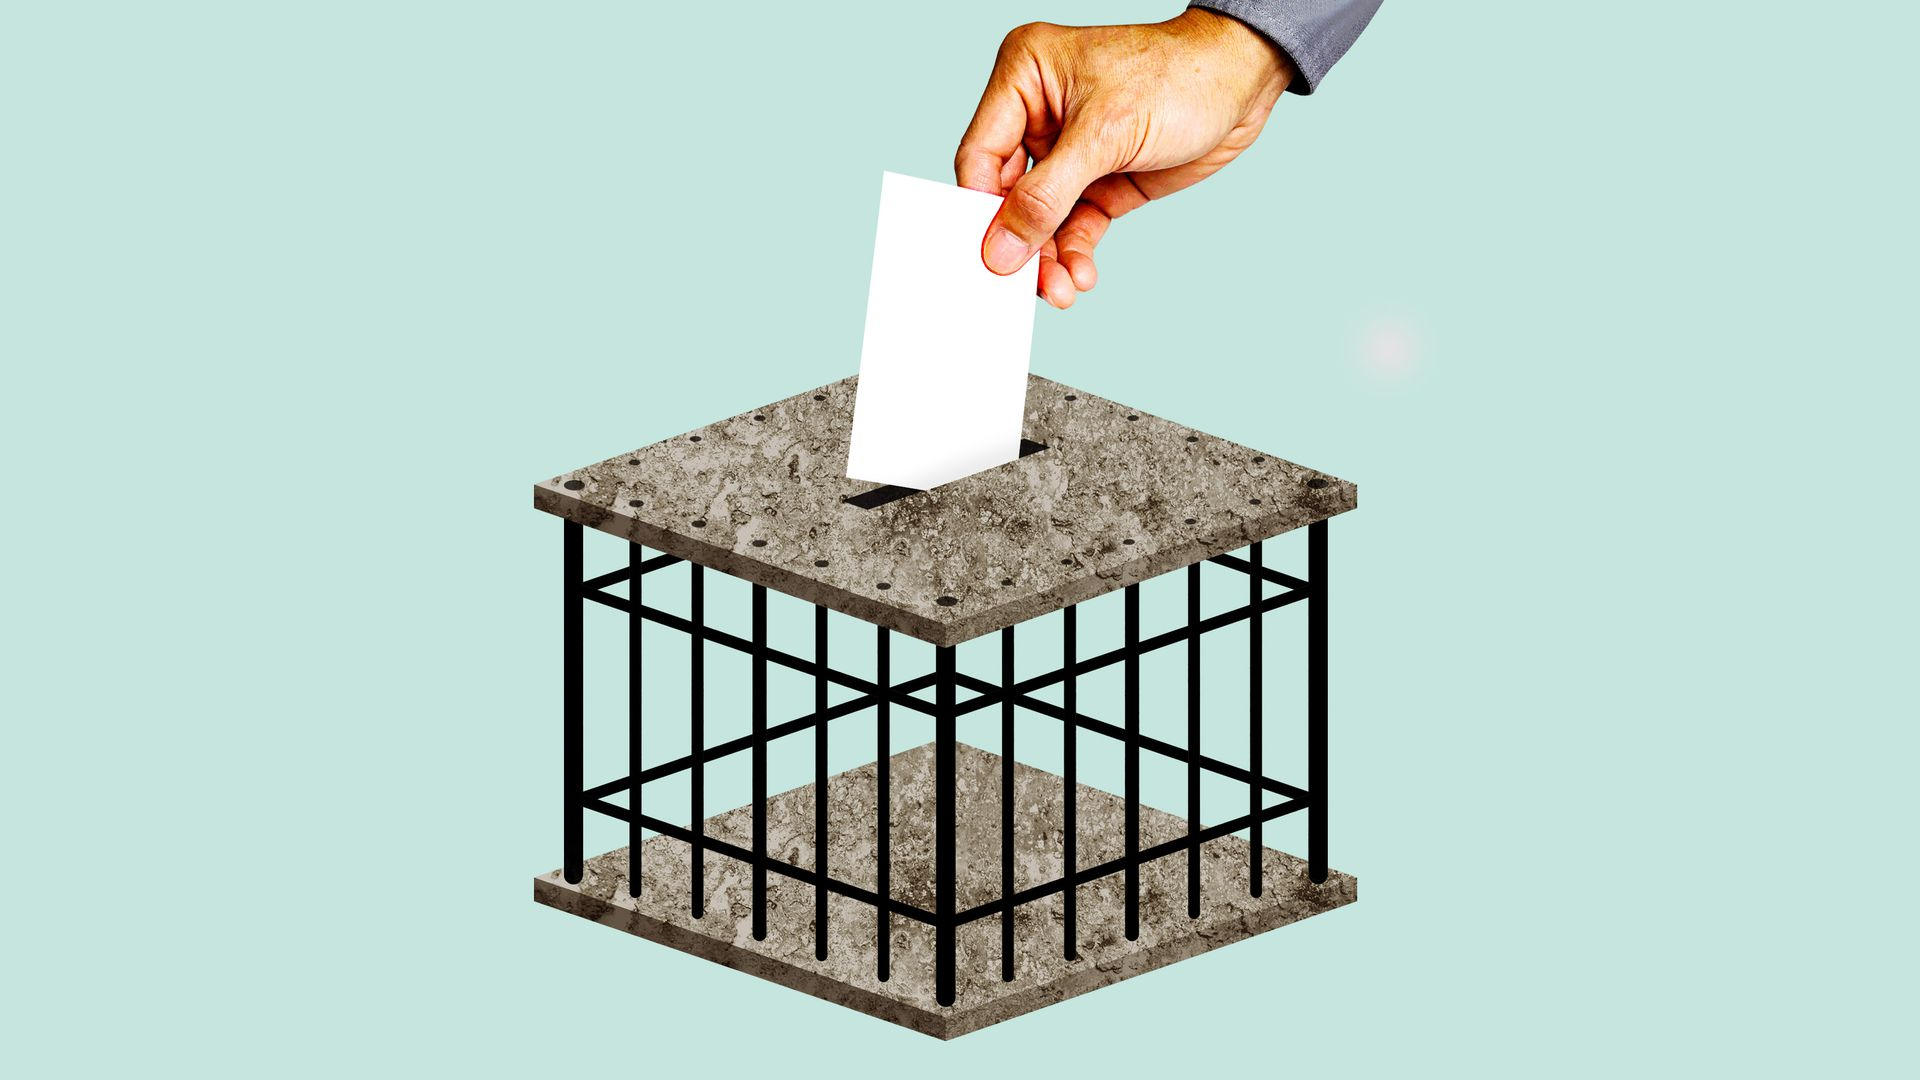 A ballot being cast in a ballot box shaped like a jail cell